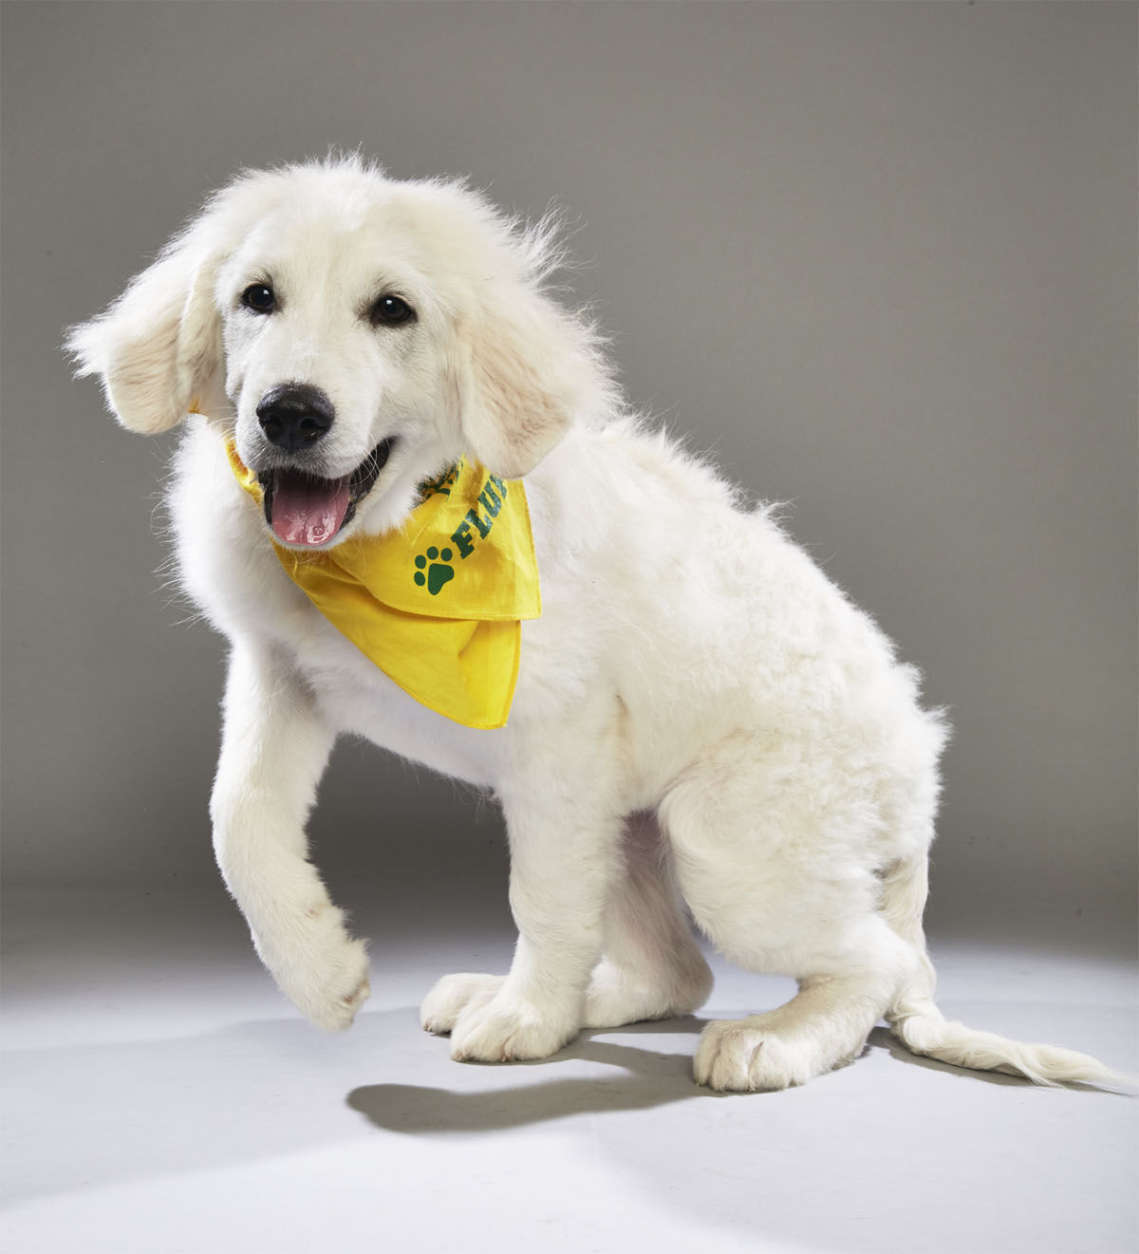 Olympia from Big Fluffy Dog Rescue. (Courtesy Animal Planet)